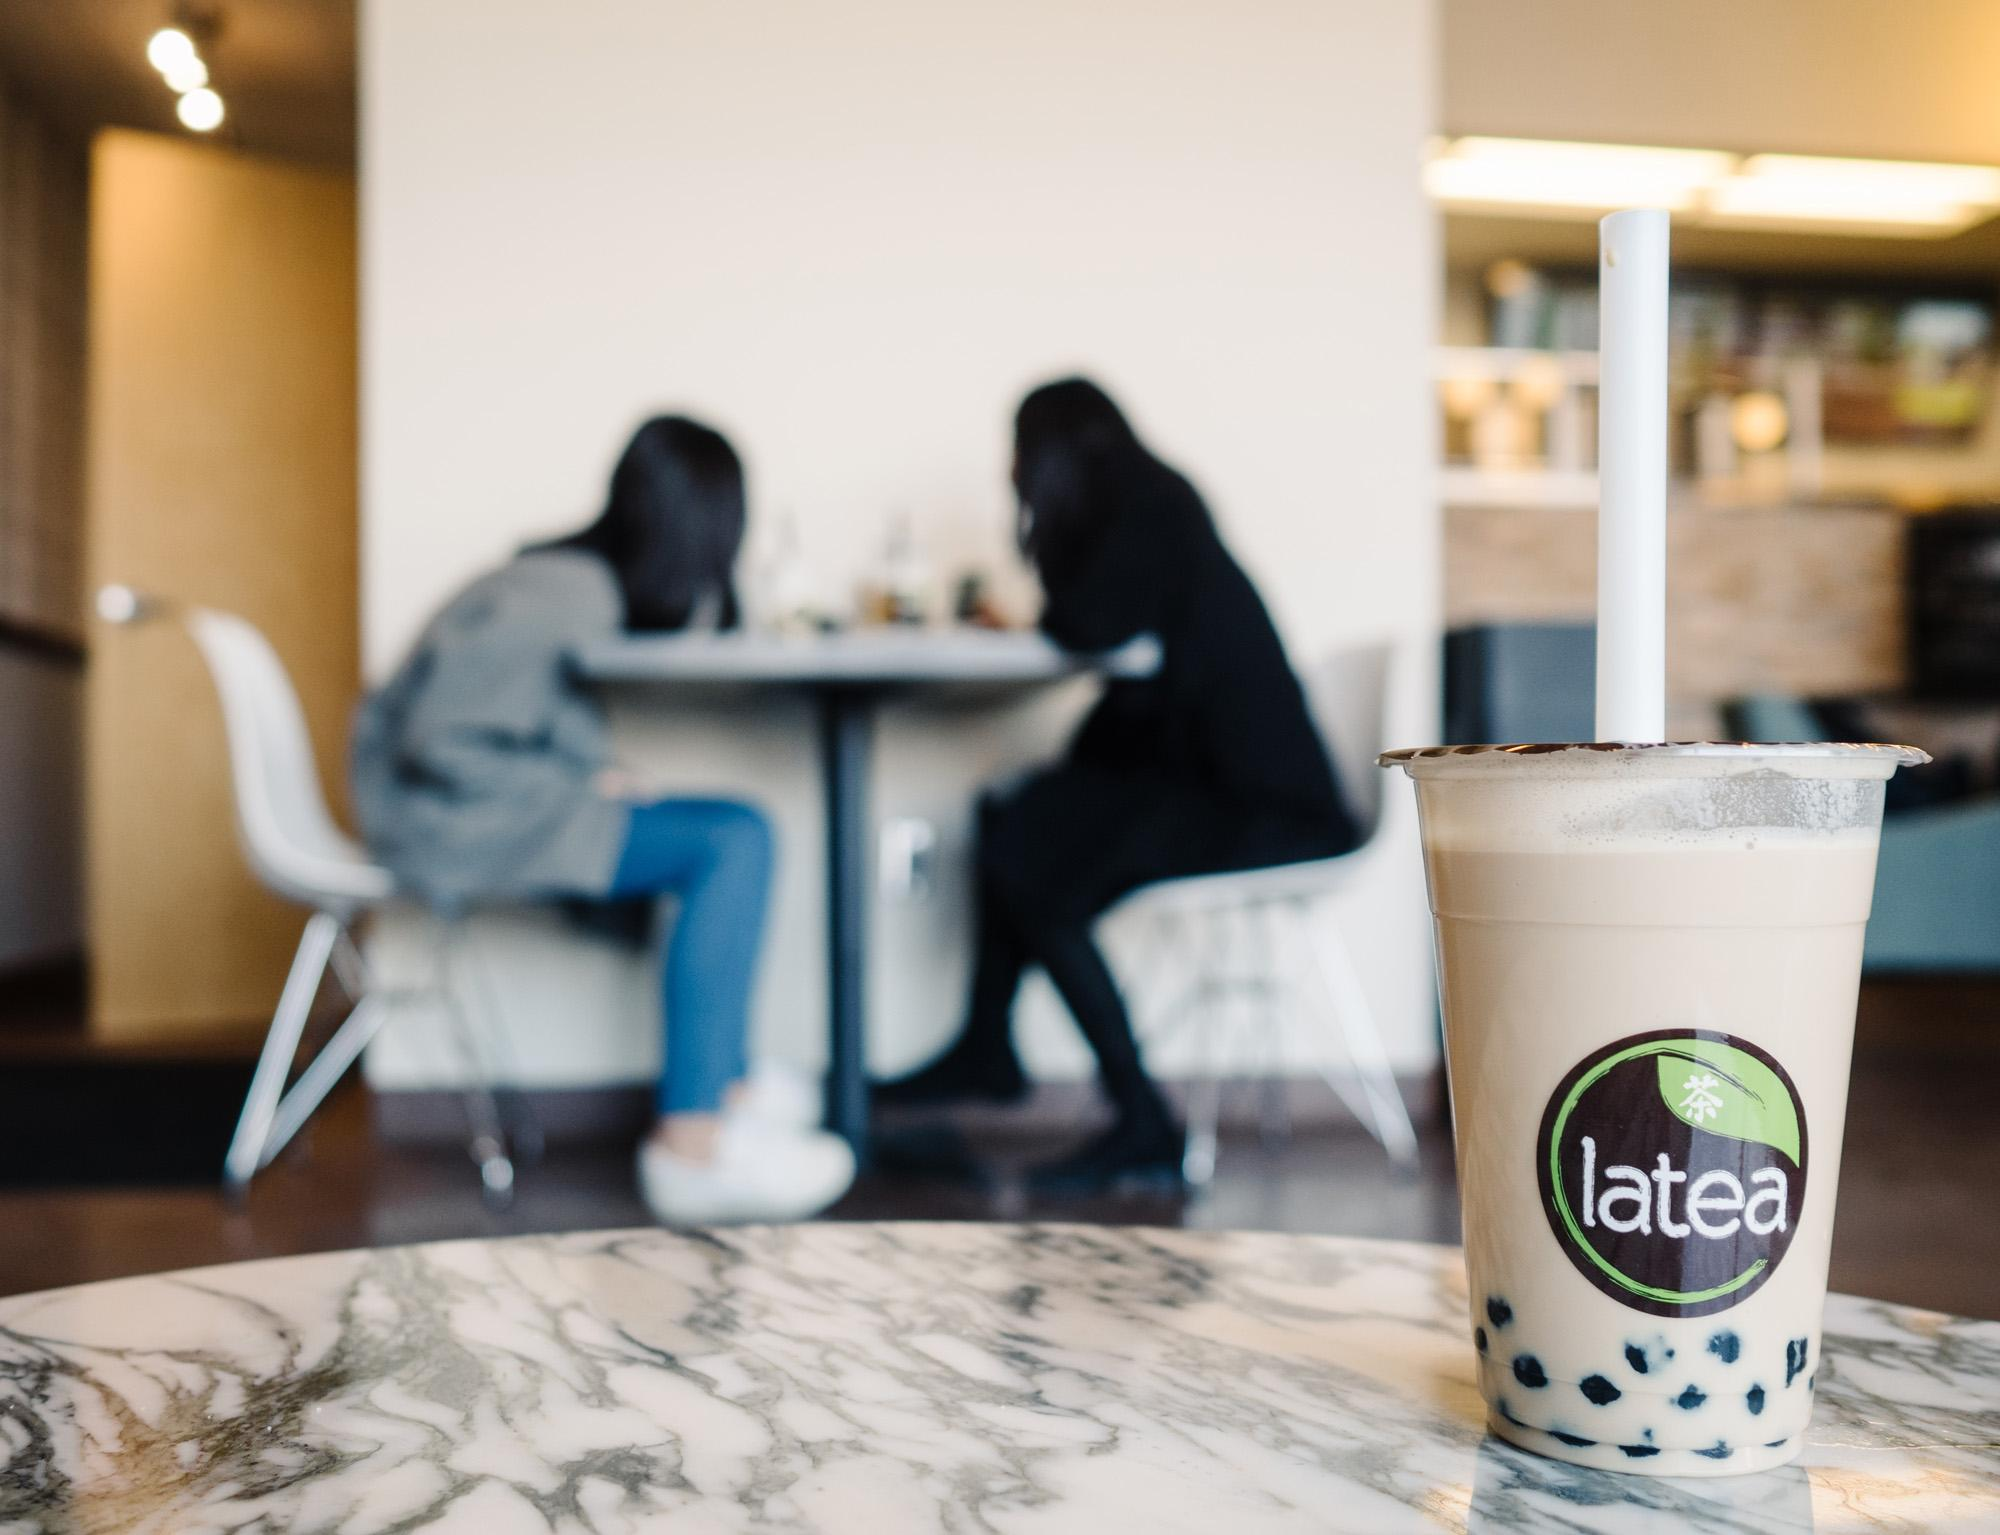 Two girls chat in the new Latea cafe.